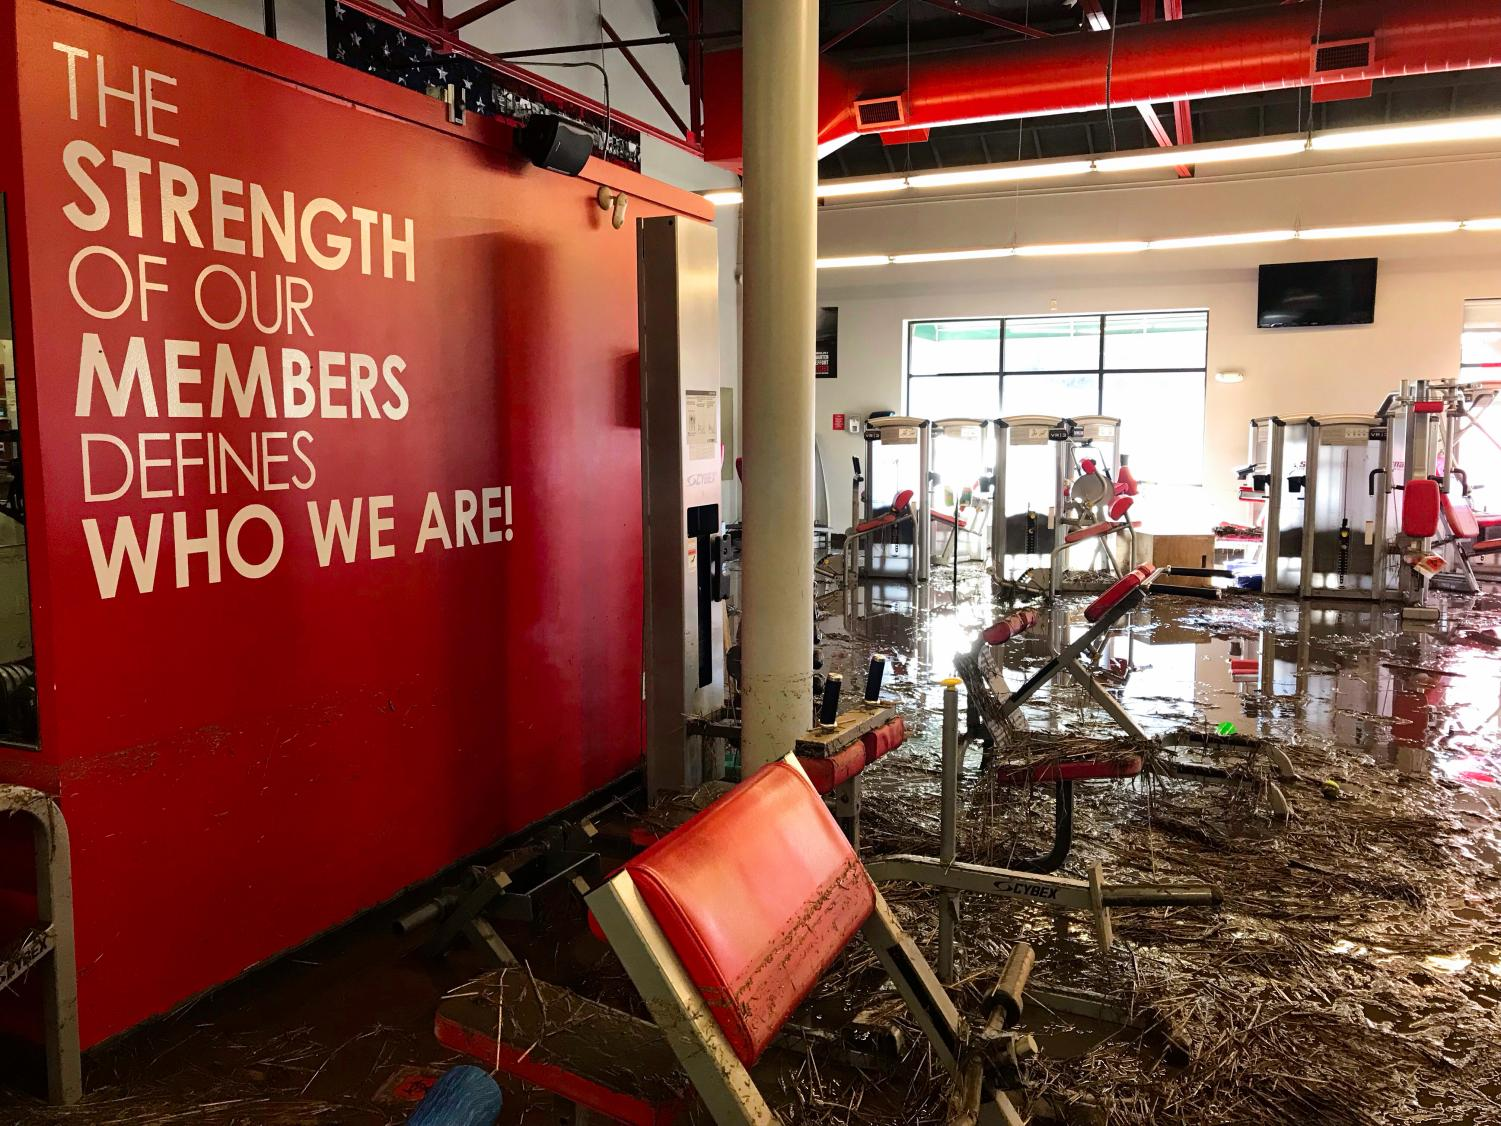 Flooding last week made all exercise equipment in Snap Fitness unusable. There was mud and debris covering the entire floor.